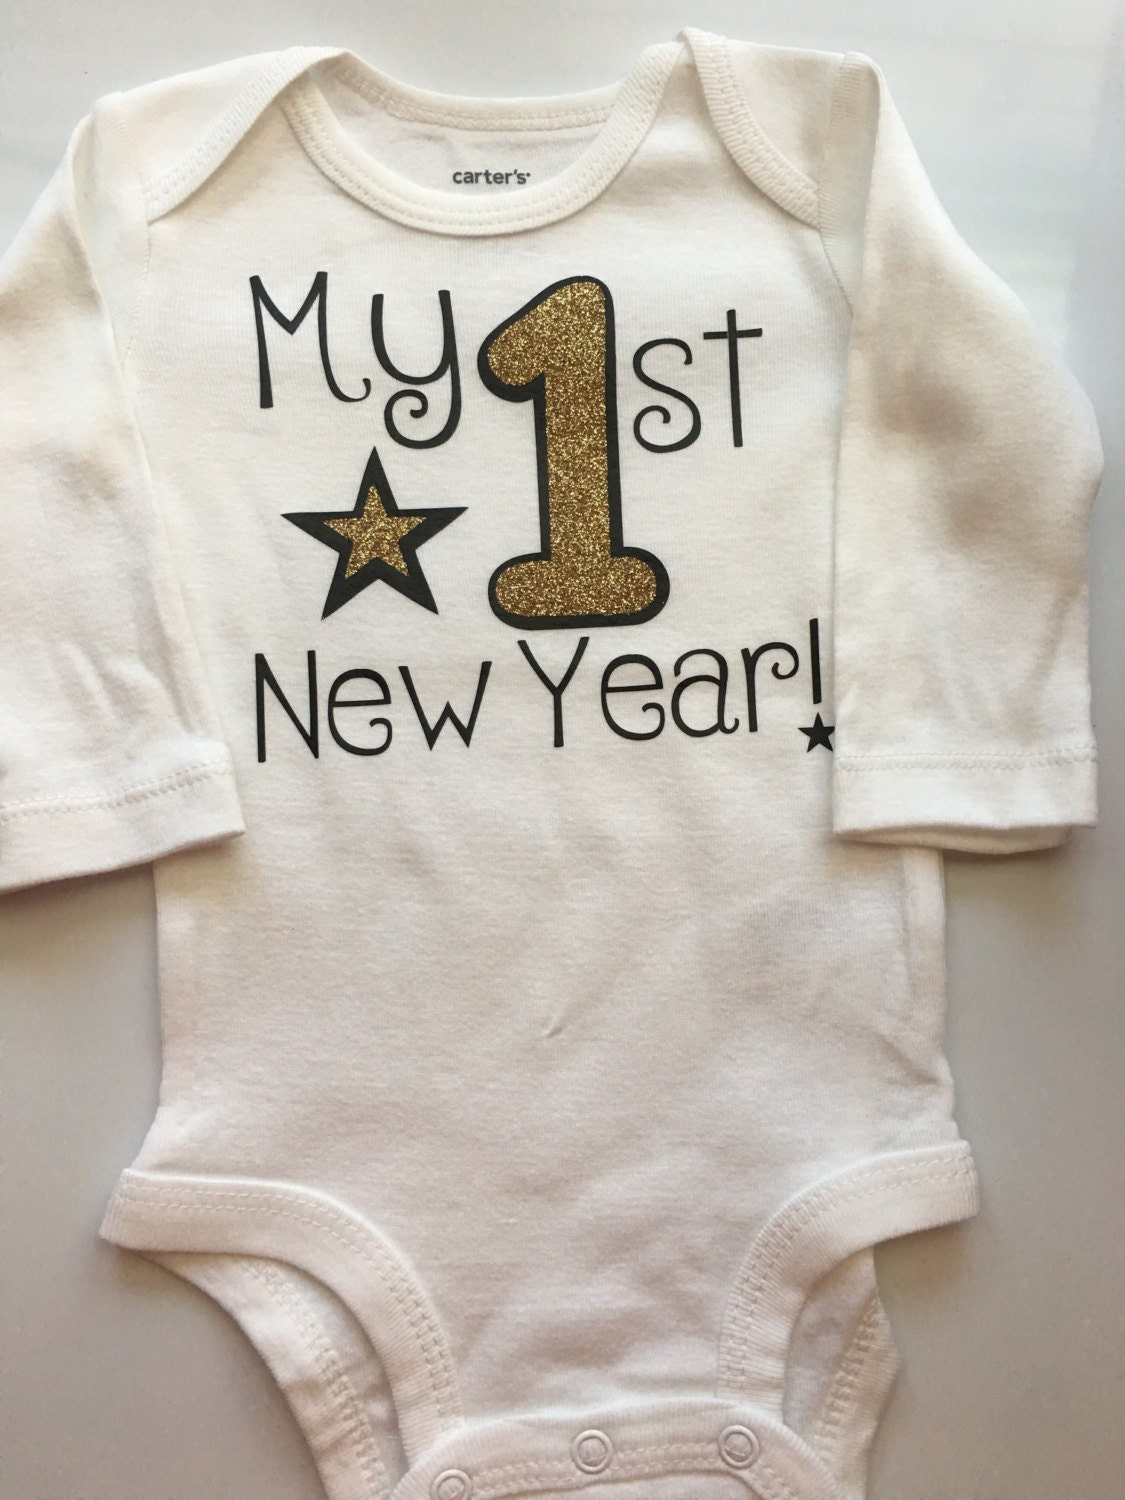 1b55bc8edd7a5 ... my first new years outfit - 2019 New years baby outfit - baby girl  photo prop- gold black New Years tutu. gallery photo gallery photo gallery  photo ...